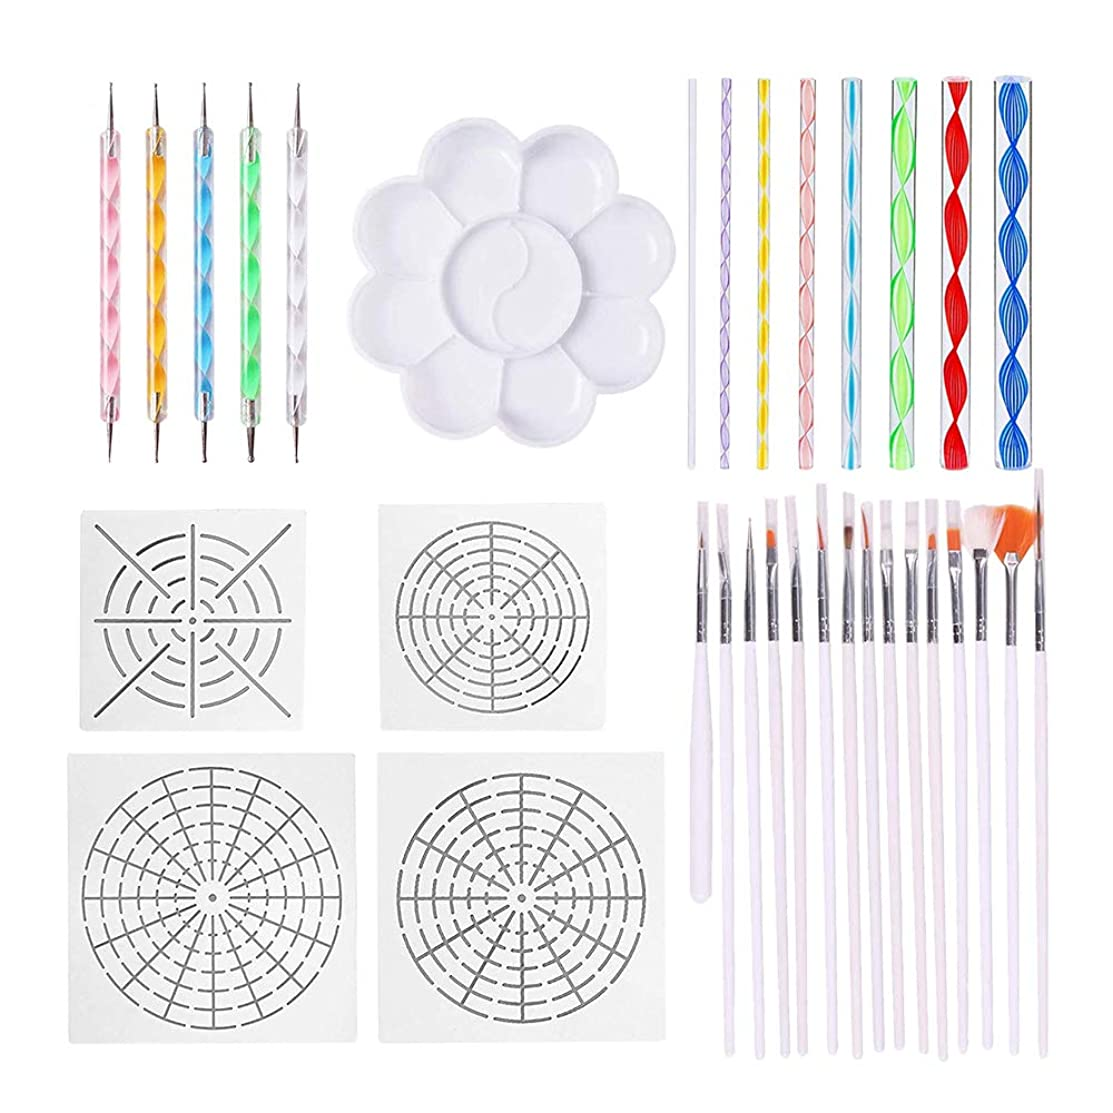 33 Pieces Dotting Tool Set for Mandala Rock Painting, Nail Art Painting, Drawing & Embossing Pattern, Clay Sculpting and Kids' Crafts